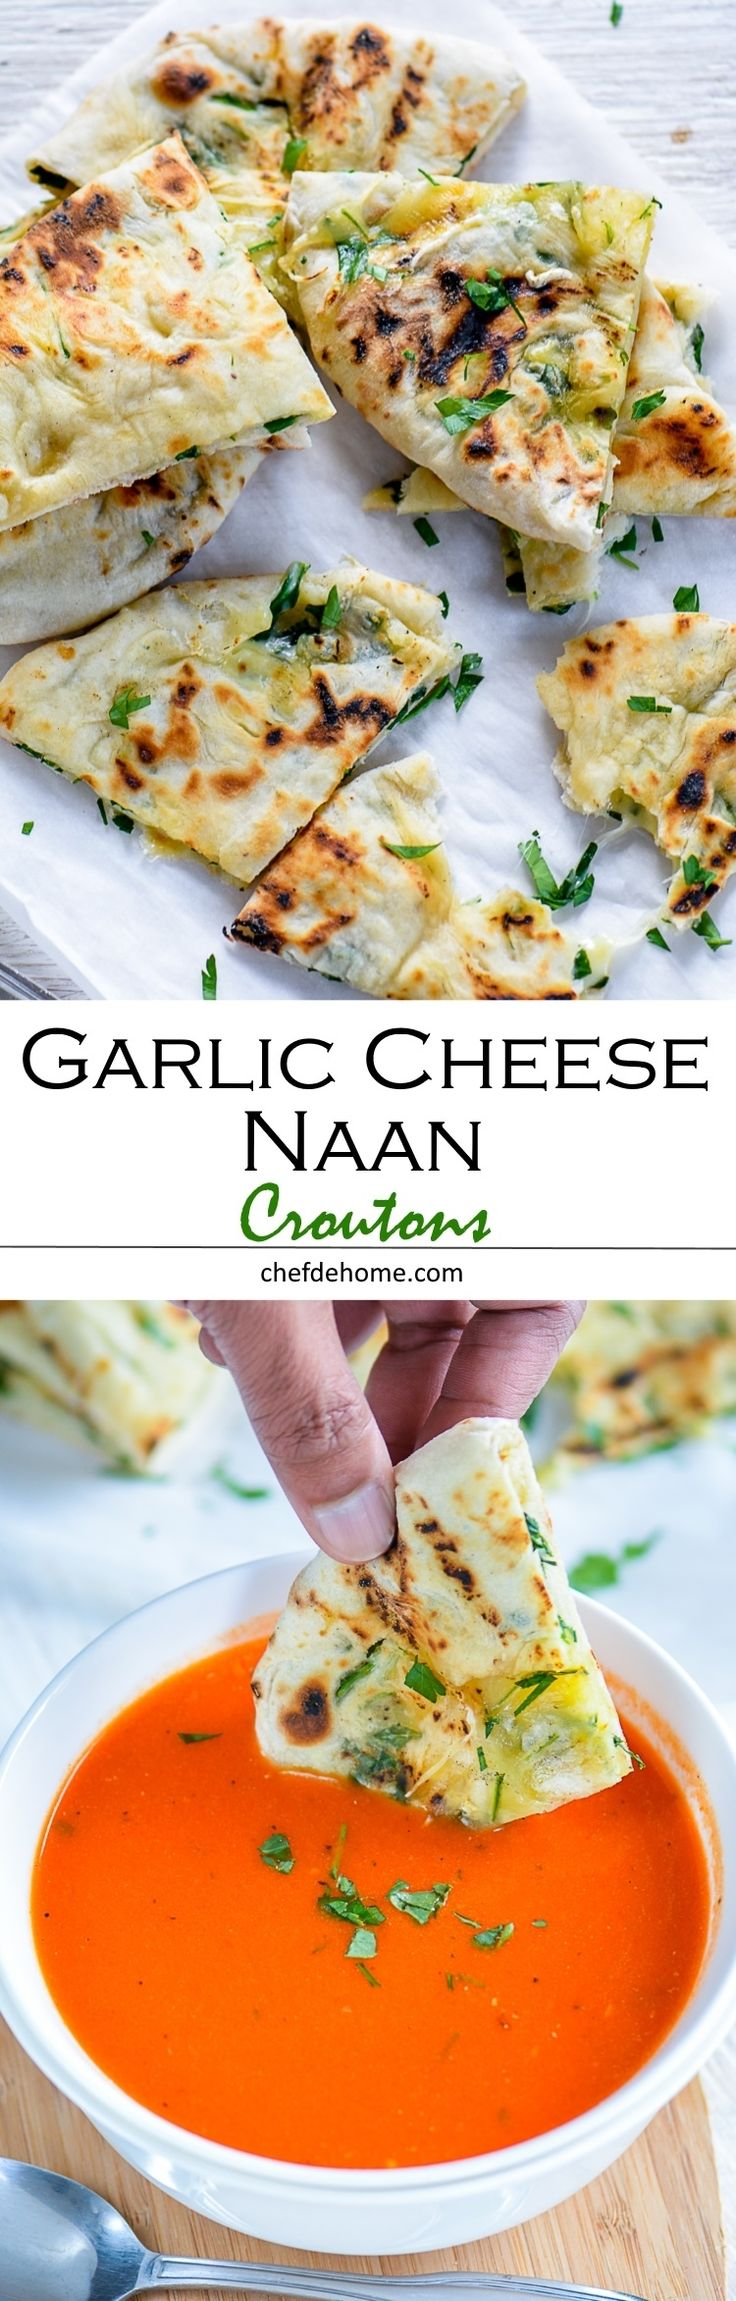 "Forget grilled cheese croutons! Try ""Pan Grilled Garlic Cheese Naan Croutons"", a new cheesy bread to soak into your favorite soup!"